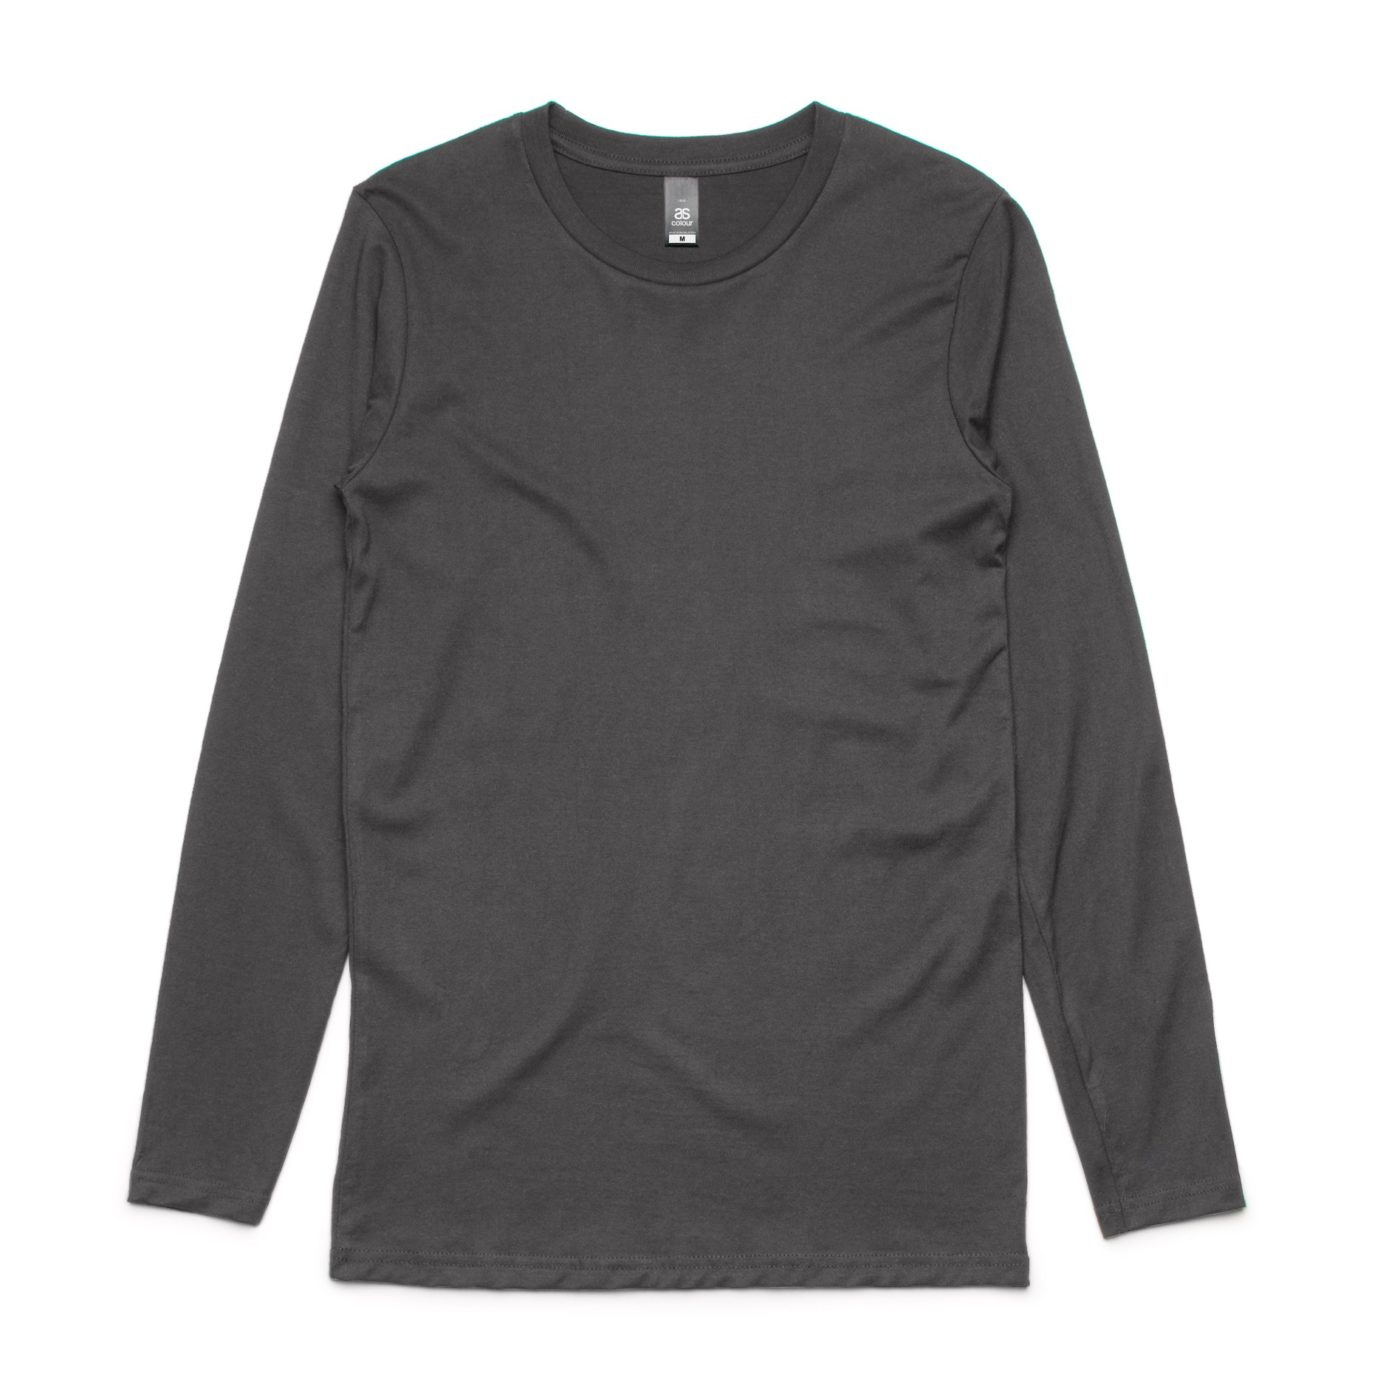 AS 5009 ink Long Sleeve tee print charcoal